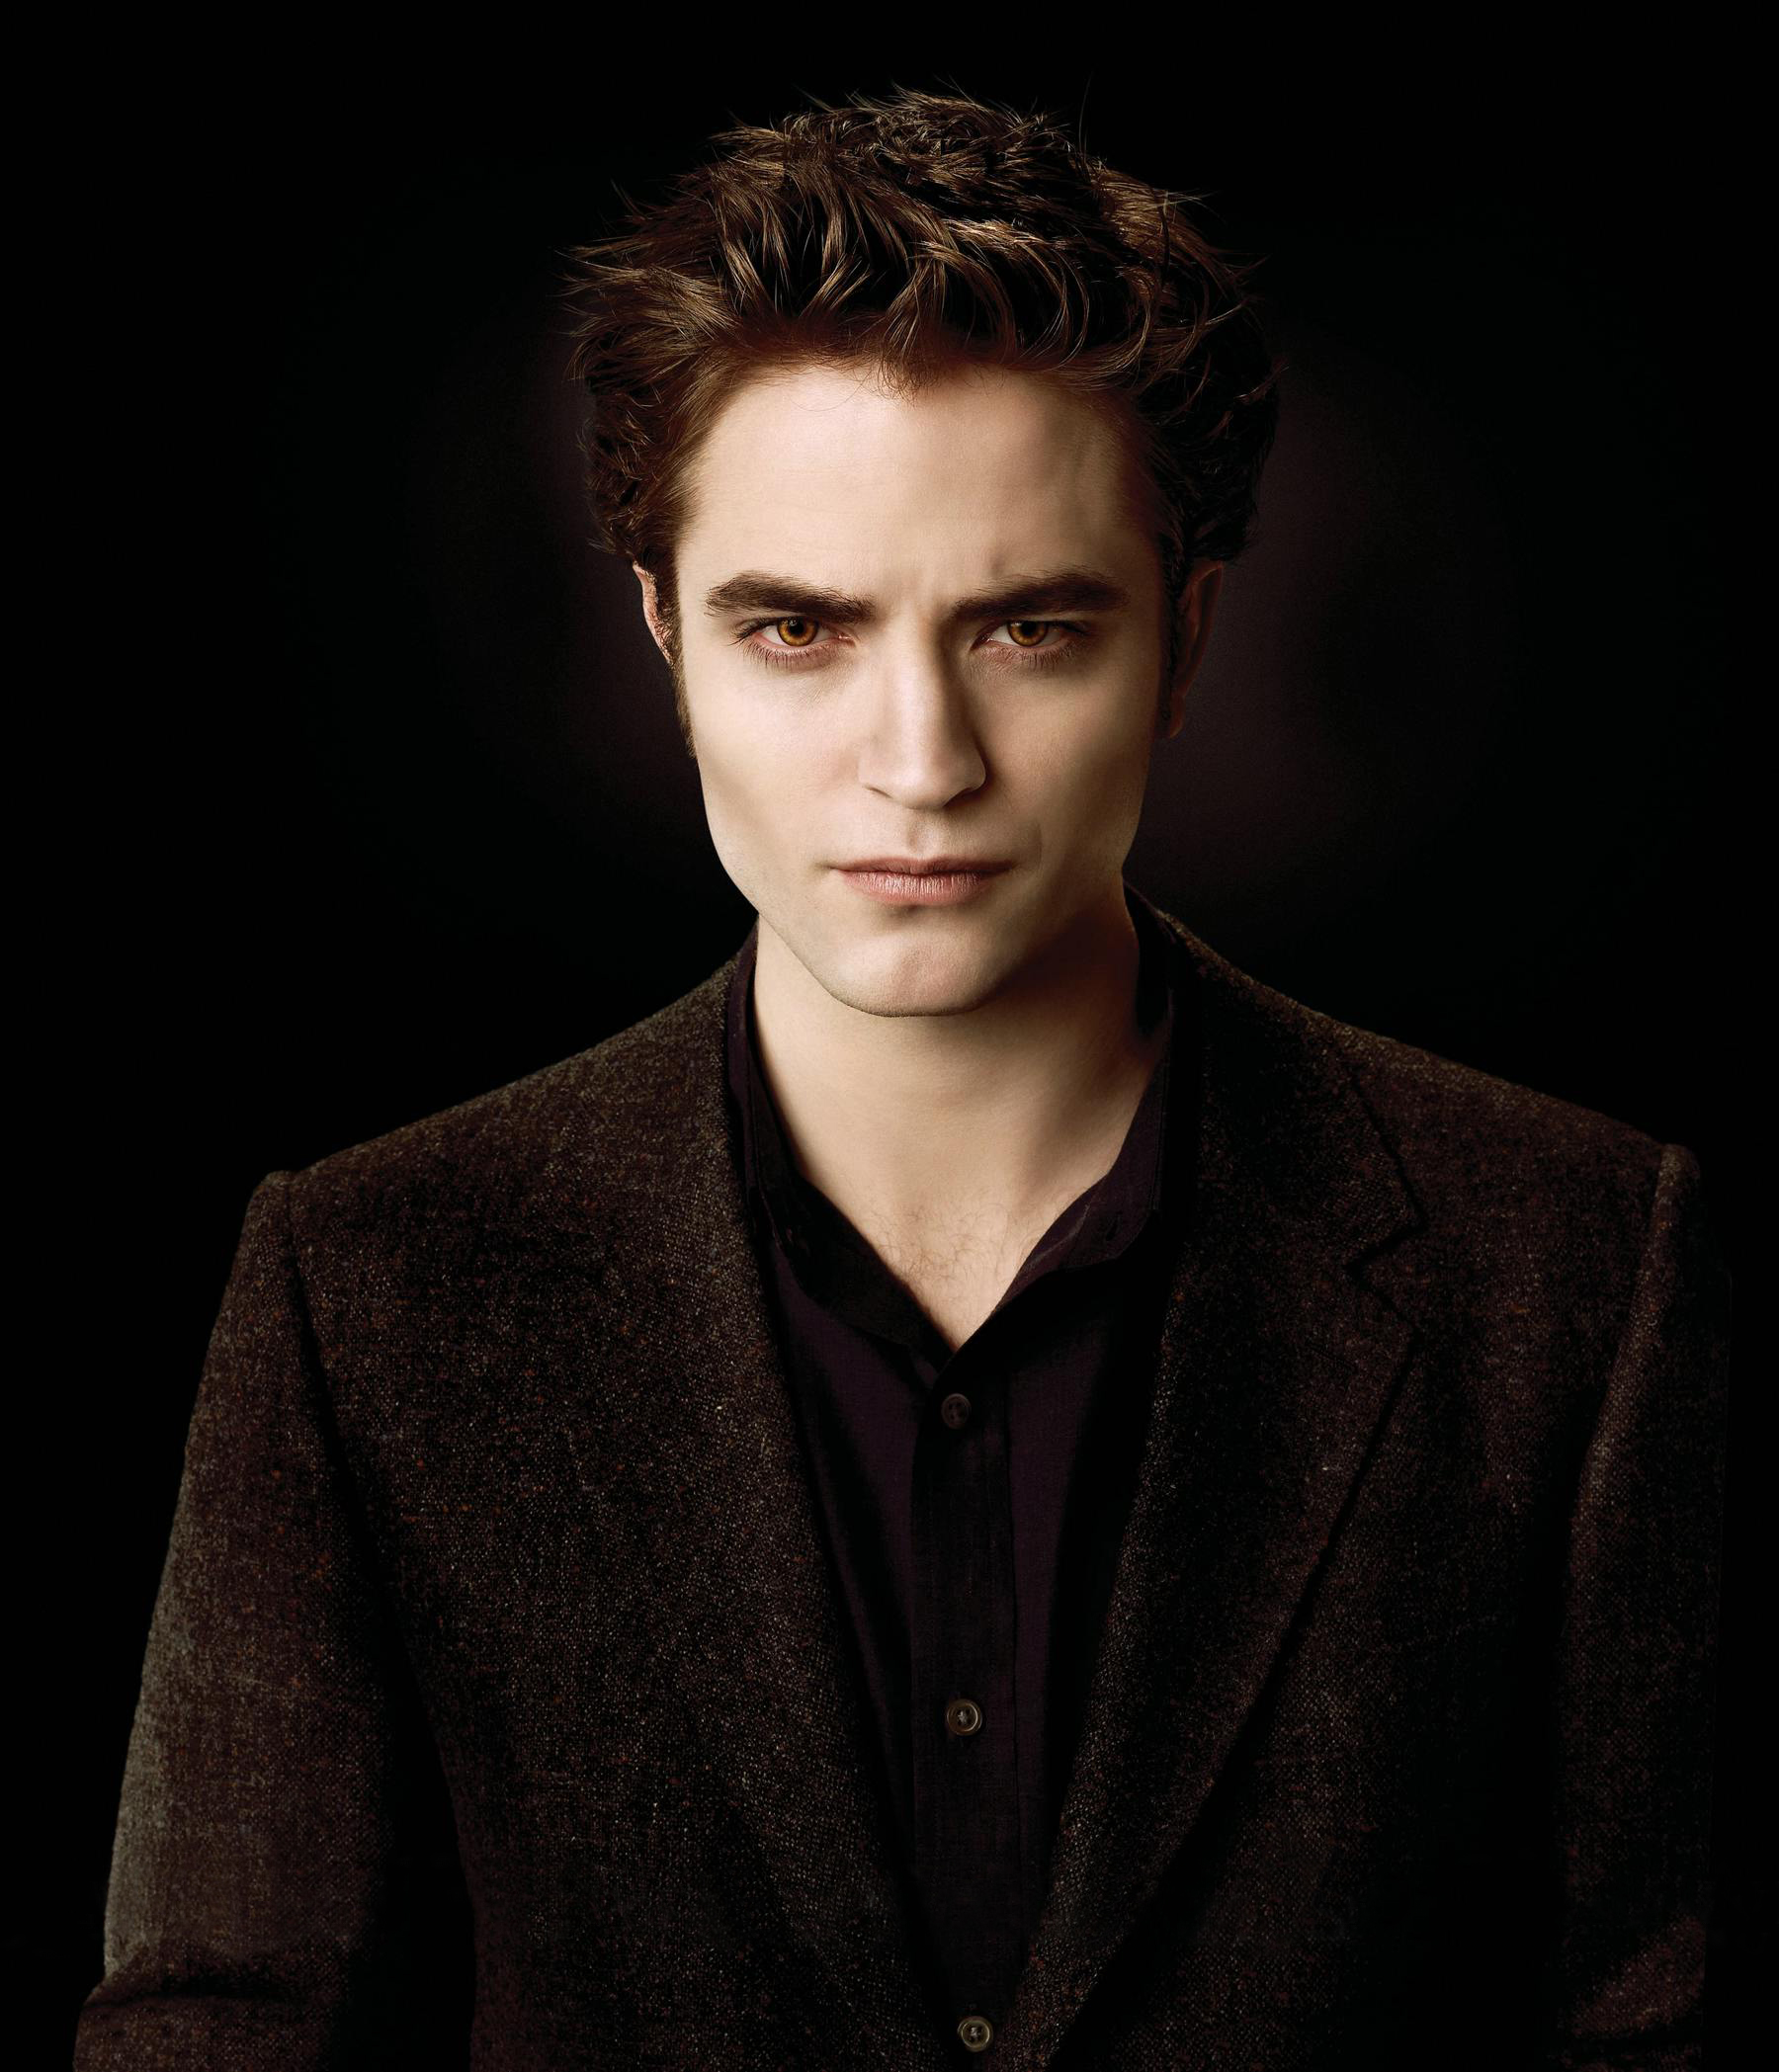 Edward Edward Cullen Photo 30928087 Fanpop